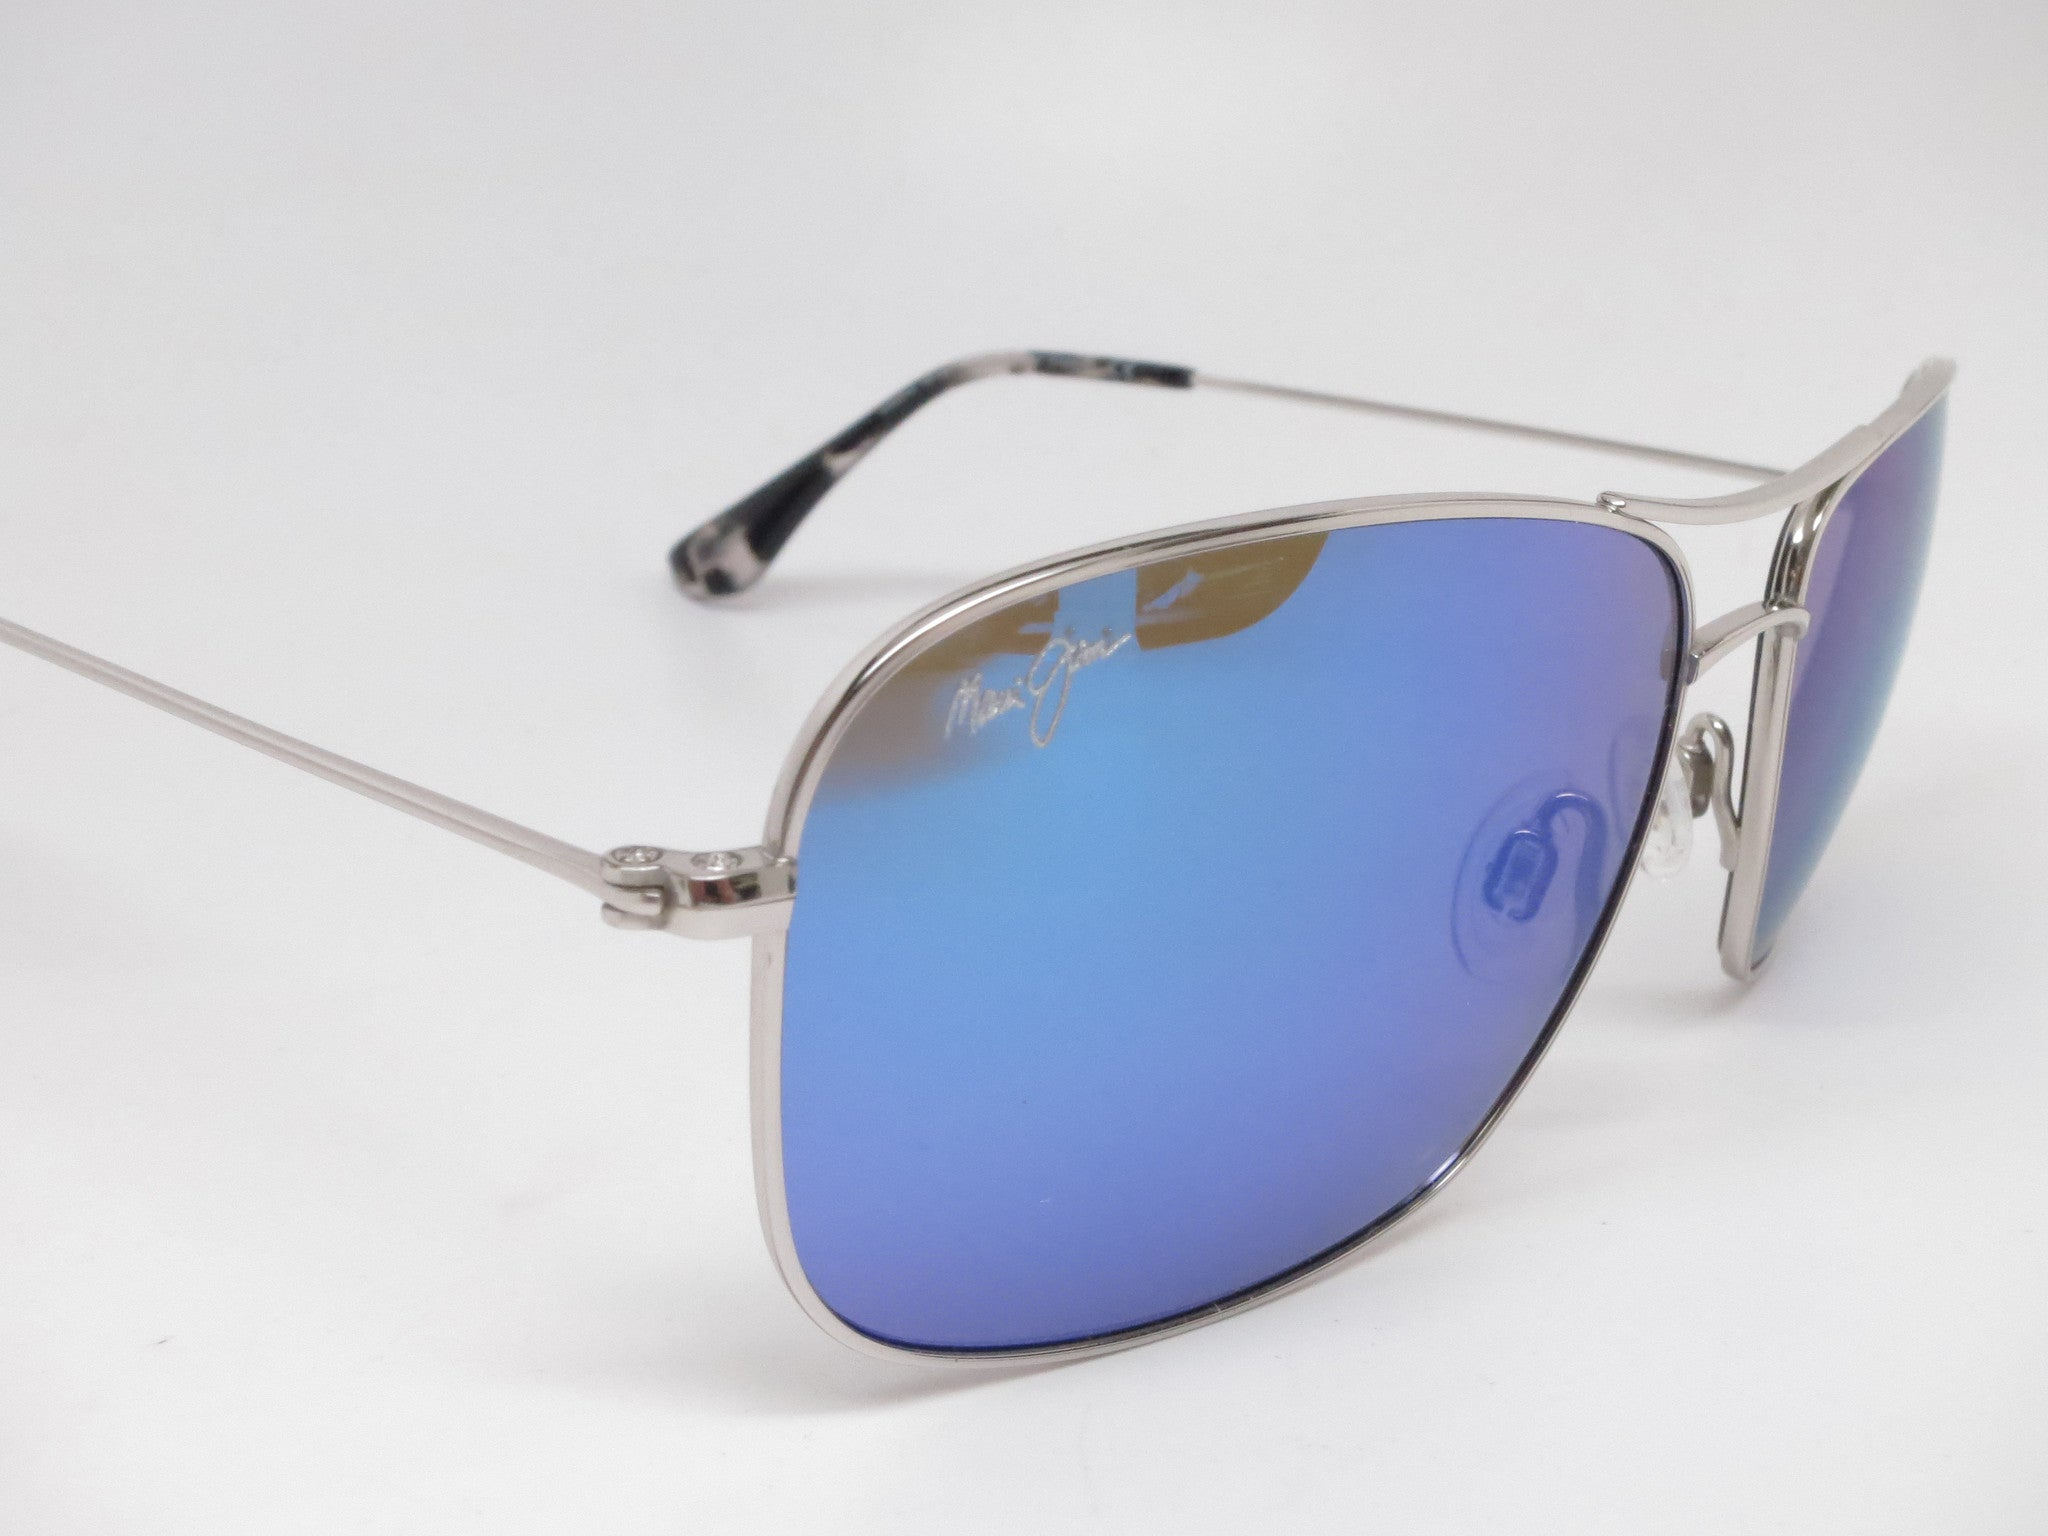 14b03a024837 Maui Jim Wiki Wiki MJ B246-17 Silver Polarized Sunglasses - Eye ...